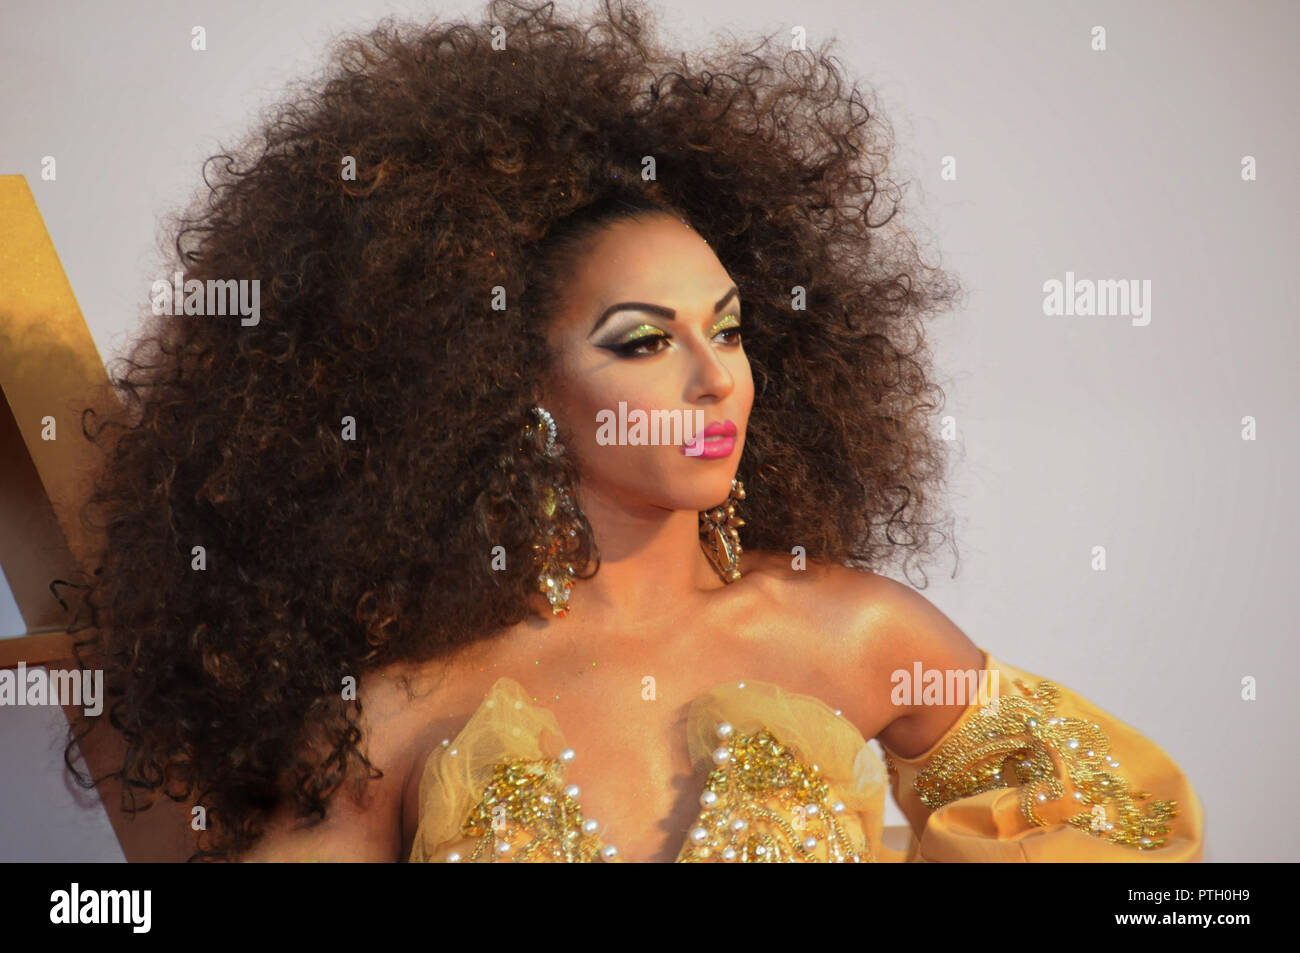 American Gay Drag Queen, Shangela, on the red carpet of the London film premiere, of A Star is Born. - Stock Image